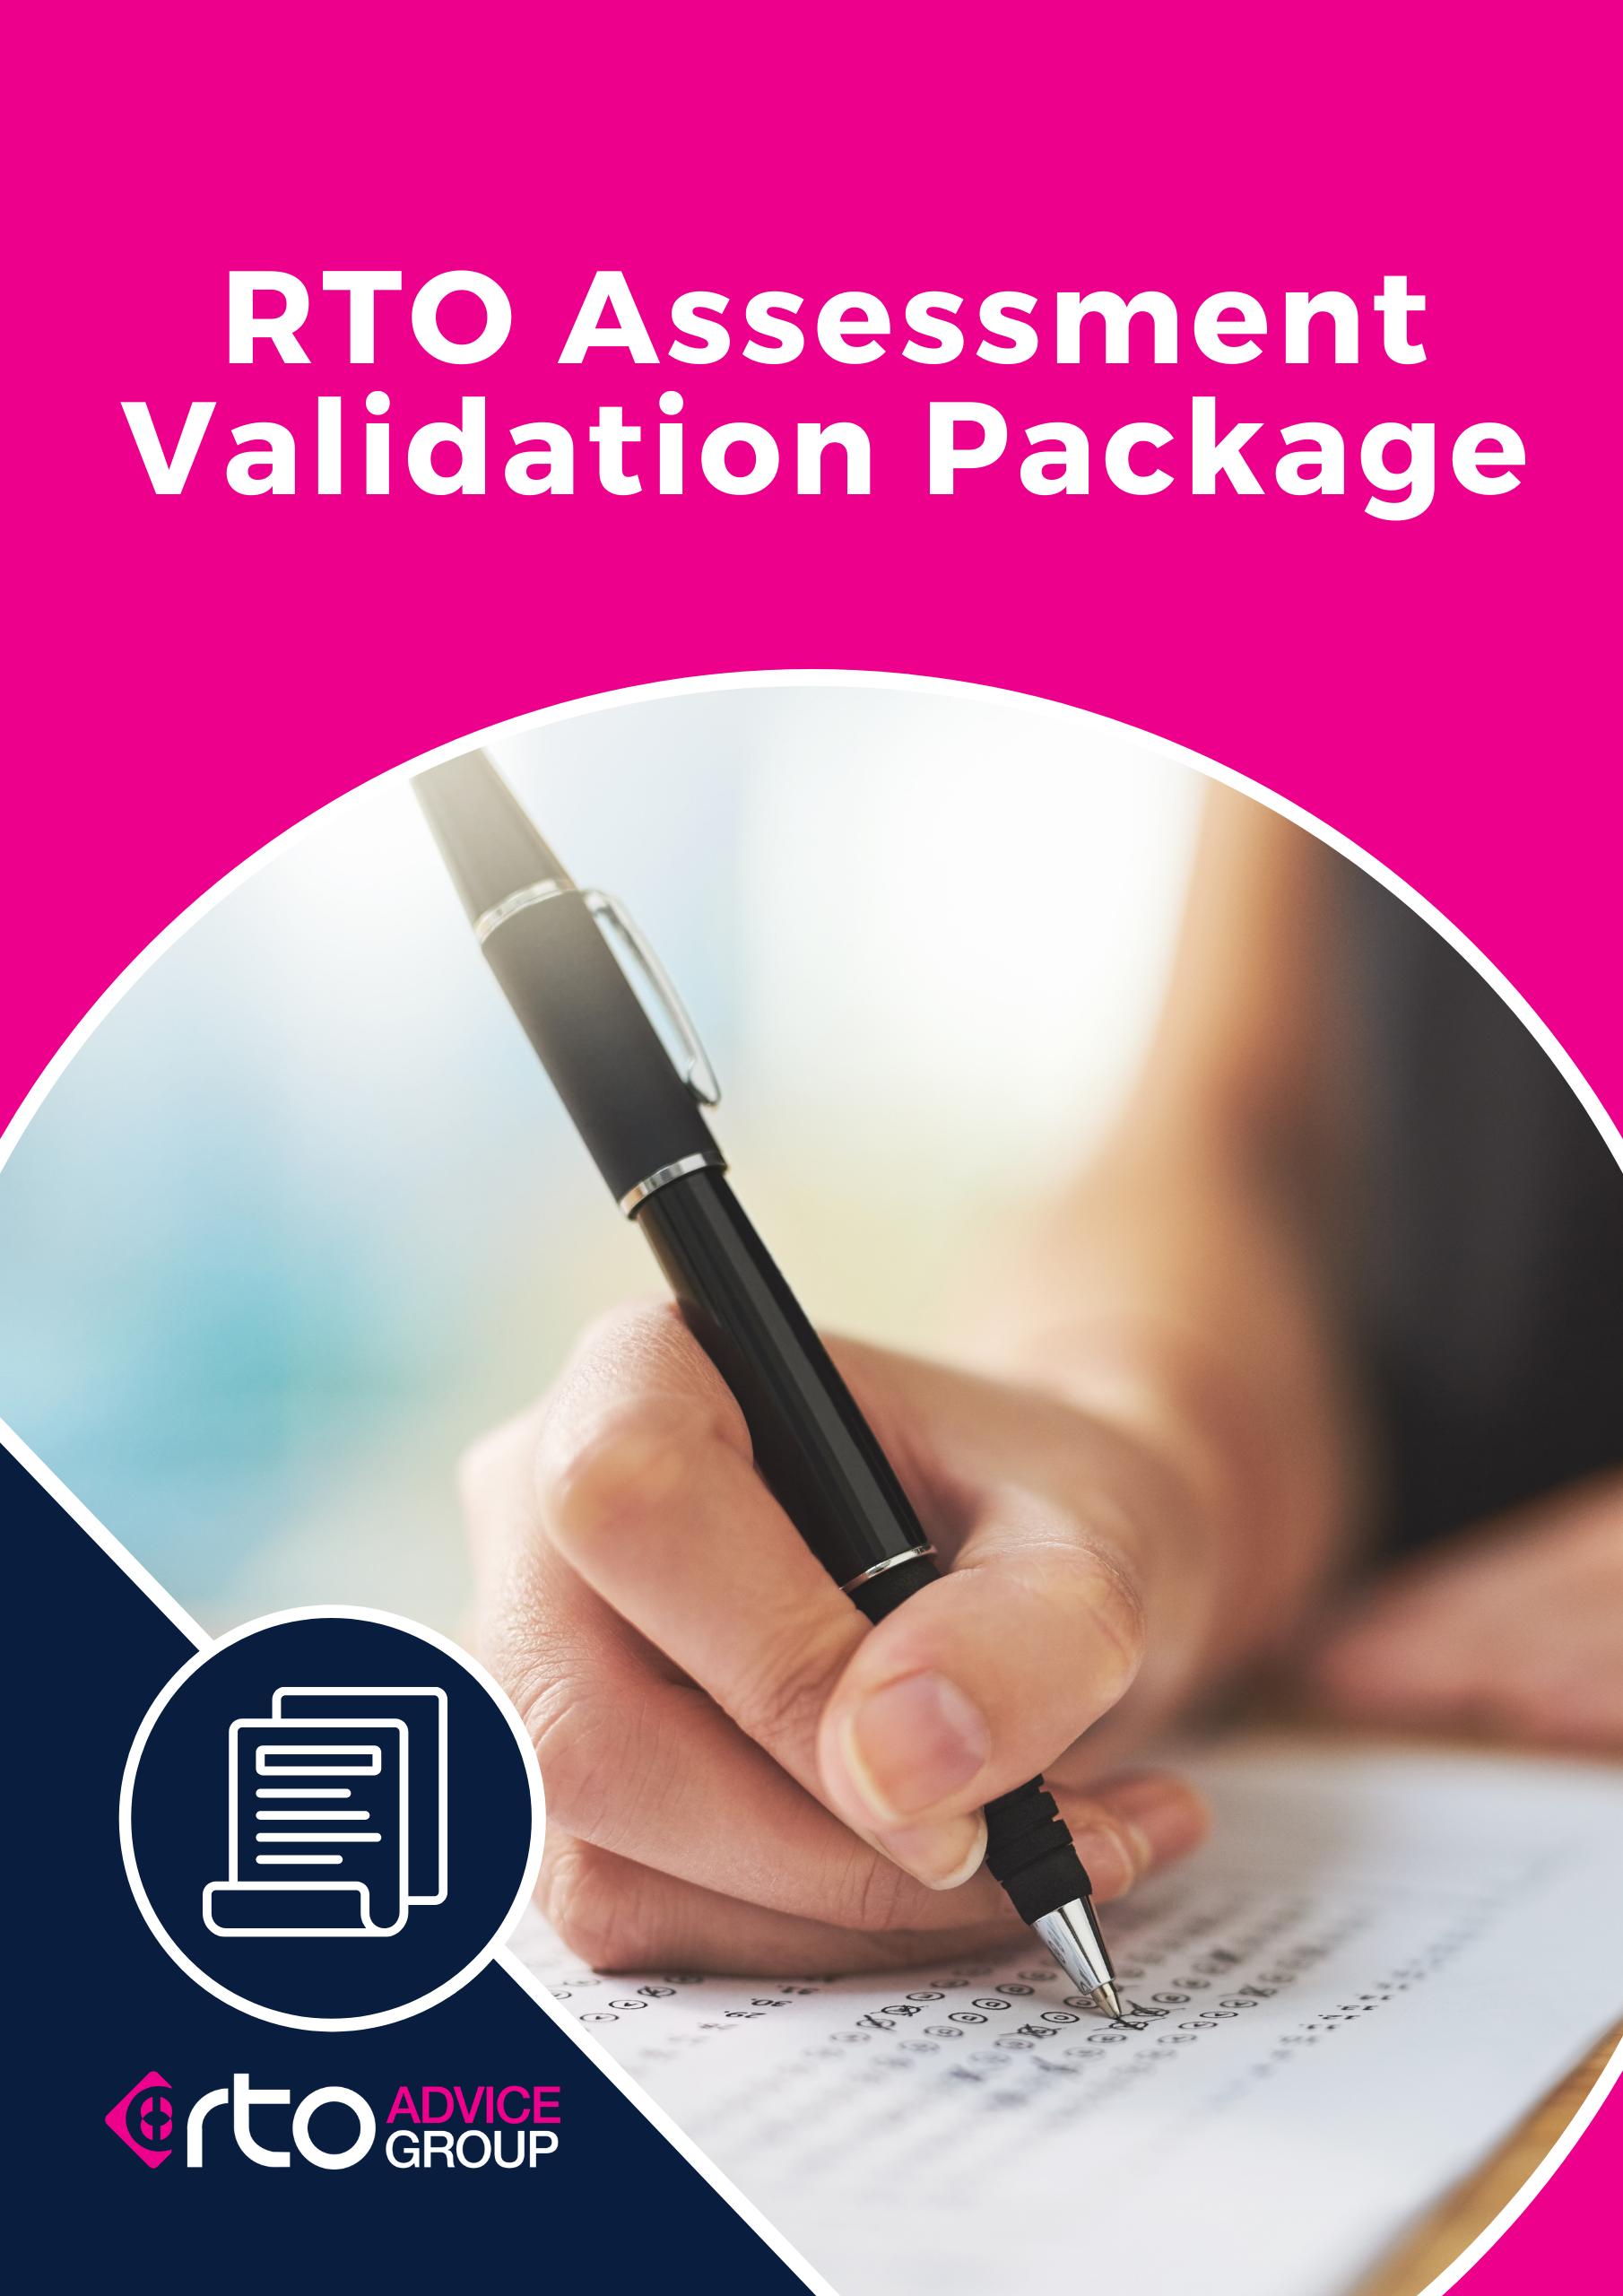 RTO Assessment Validation Package